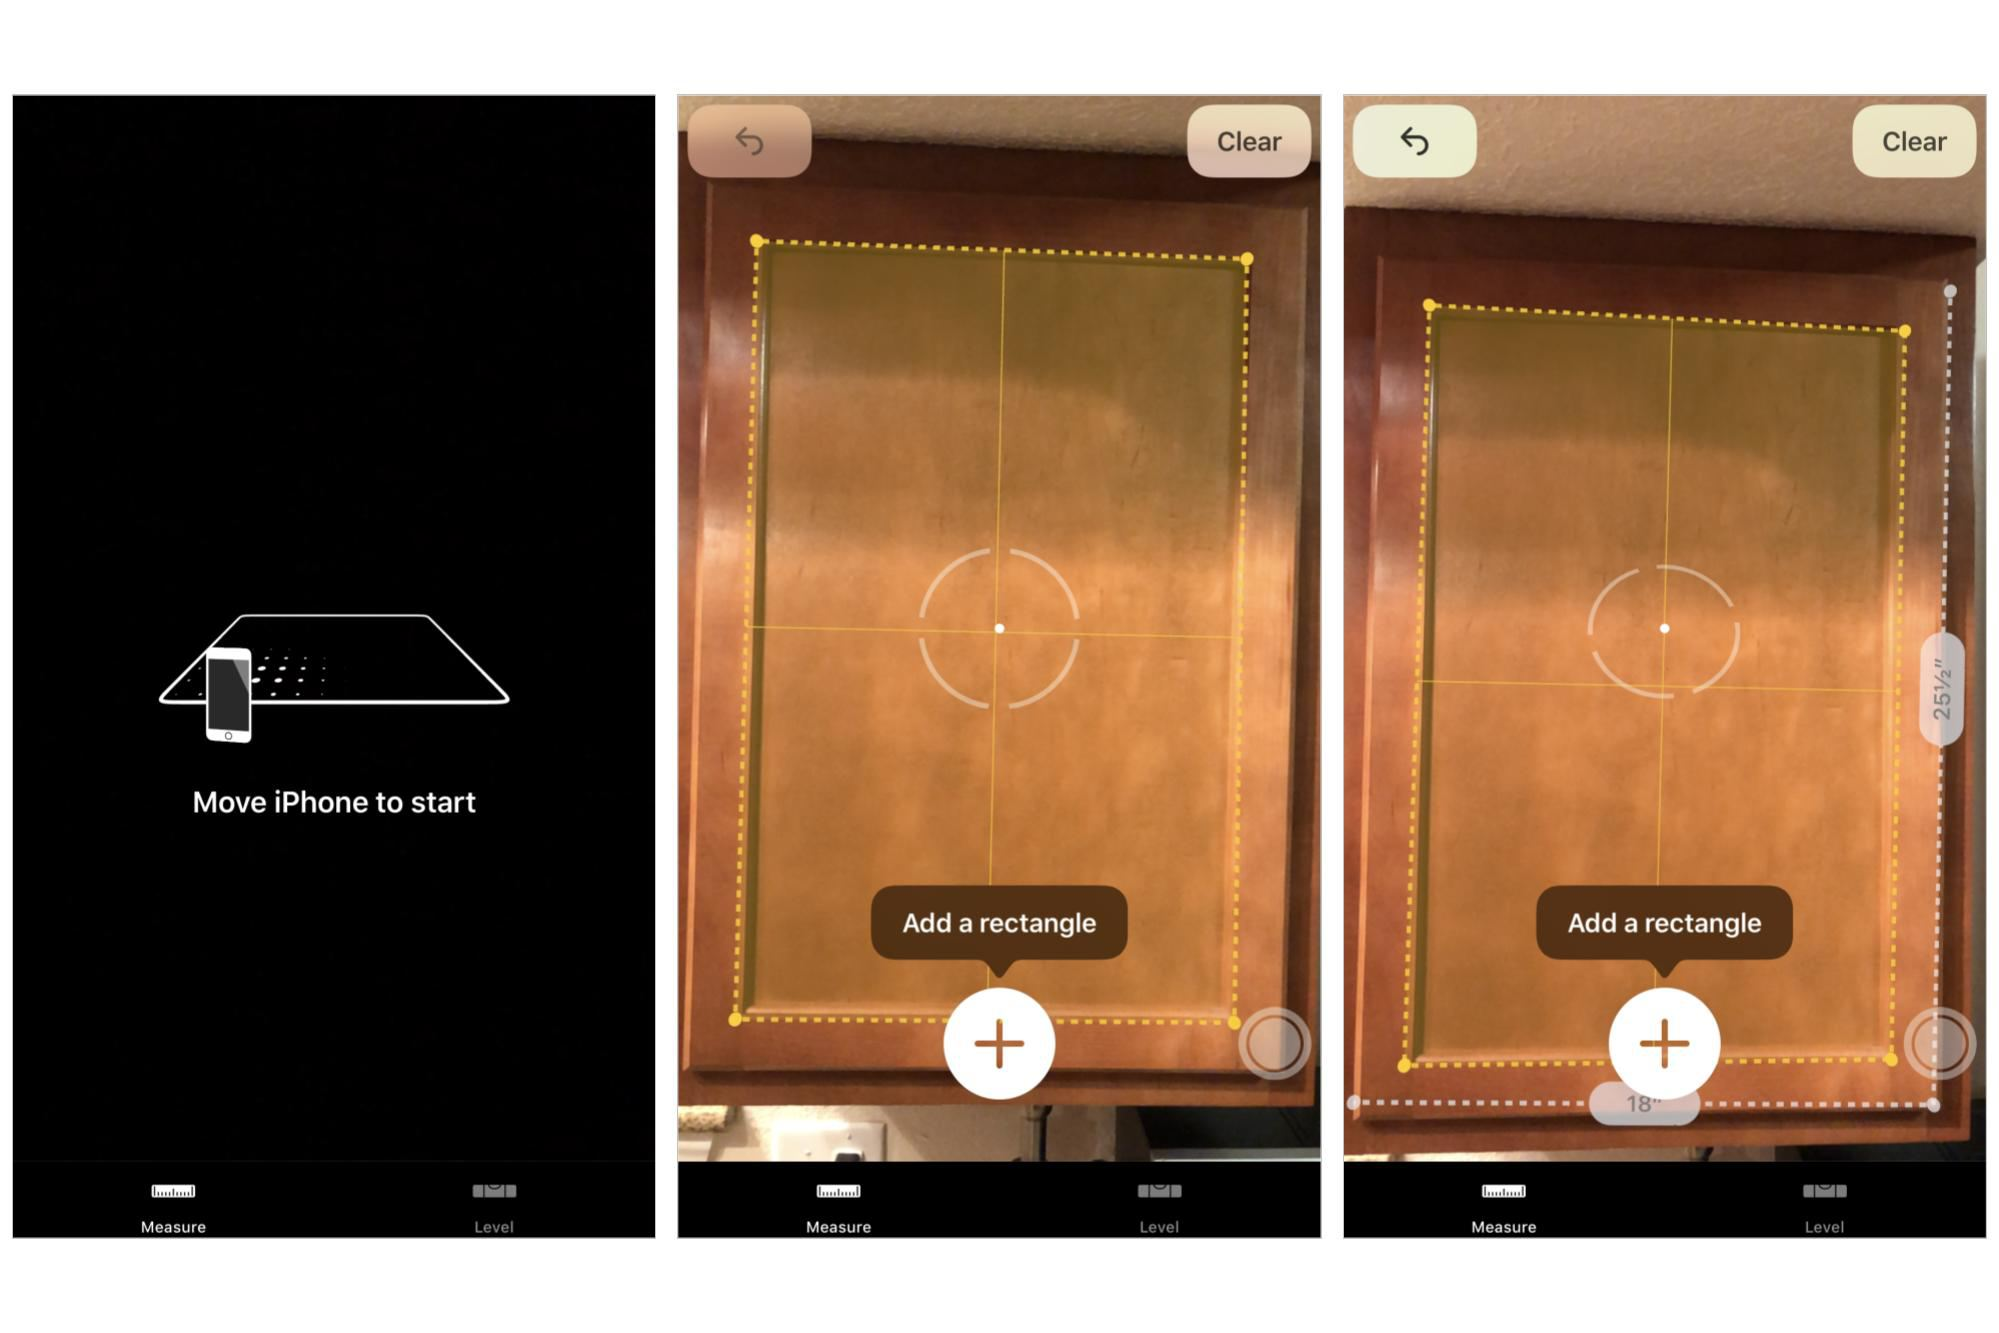 3 screenshots: Move iPhone to start message; Initial measurement options; Measured dimensions of a kitchen cabinet shown